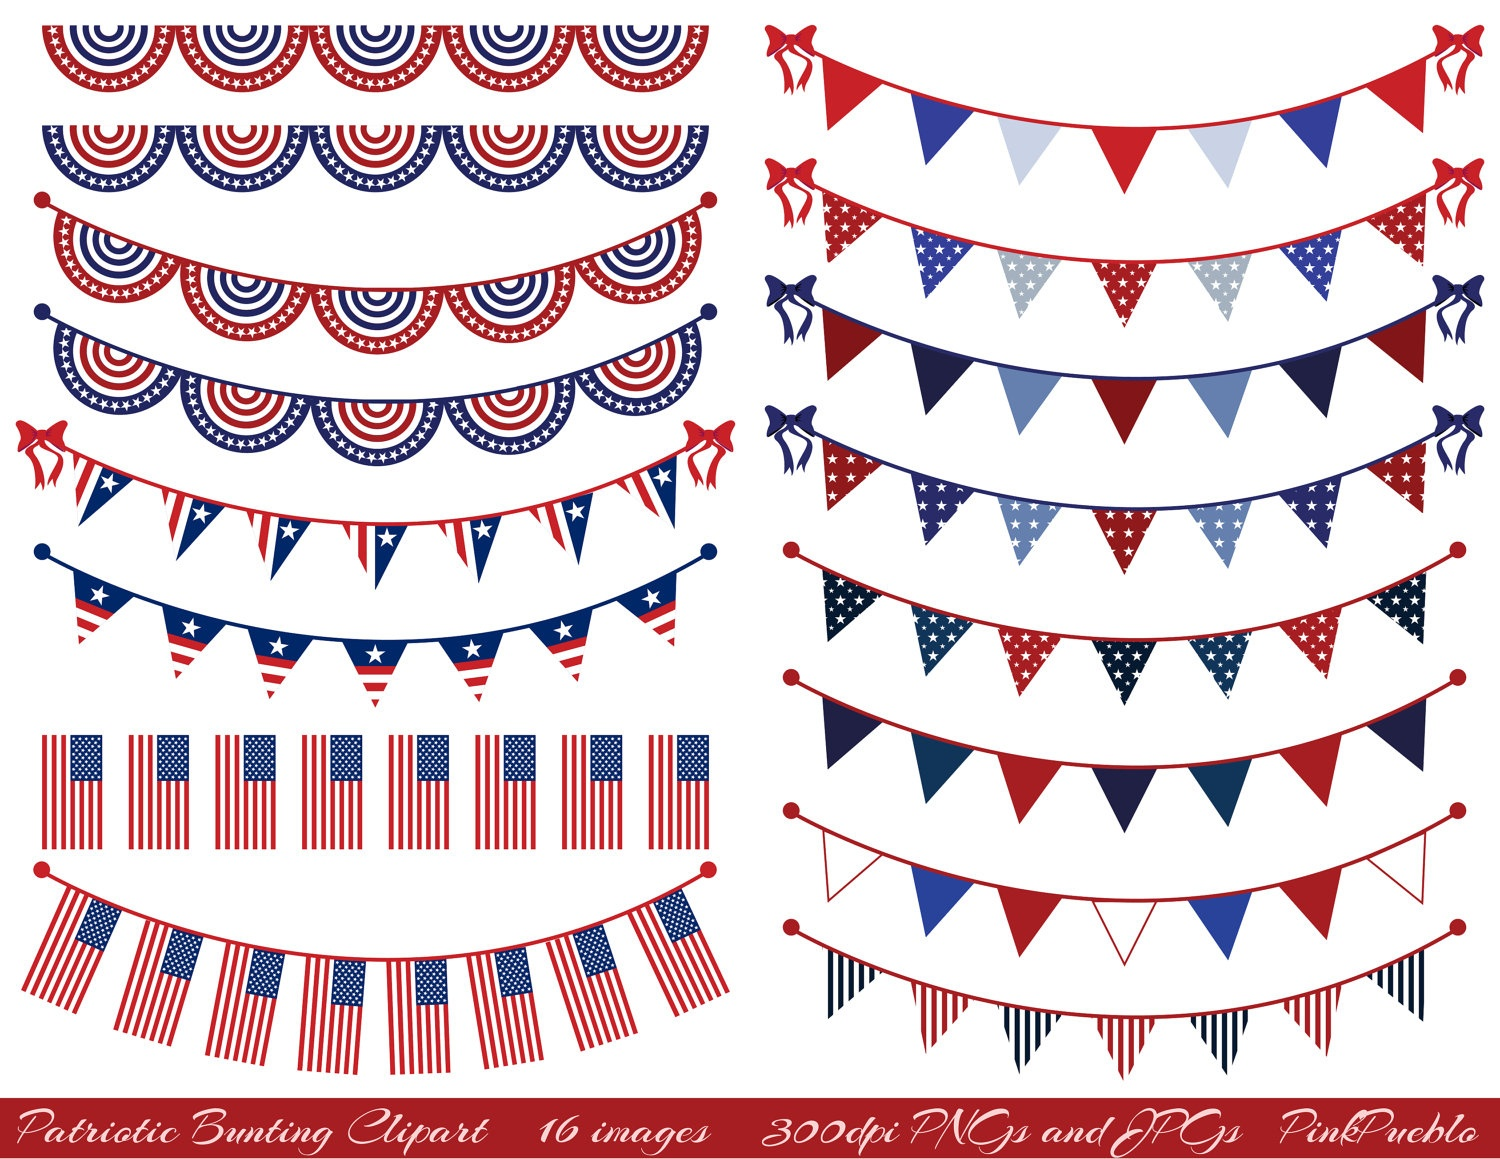 Free Patriotic Banner Cliparts, Download Free Clip Art, Free Clip - Free Printable Patriotic Banner